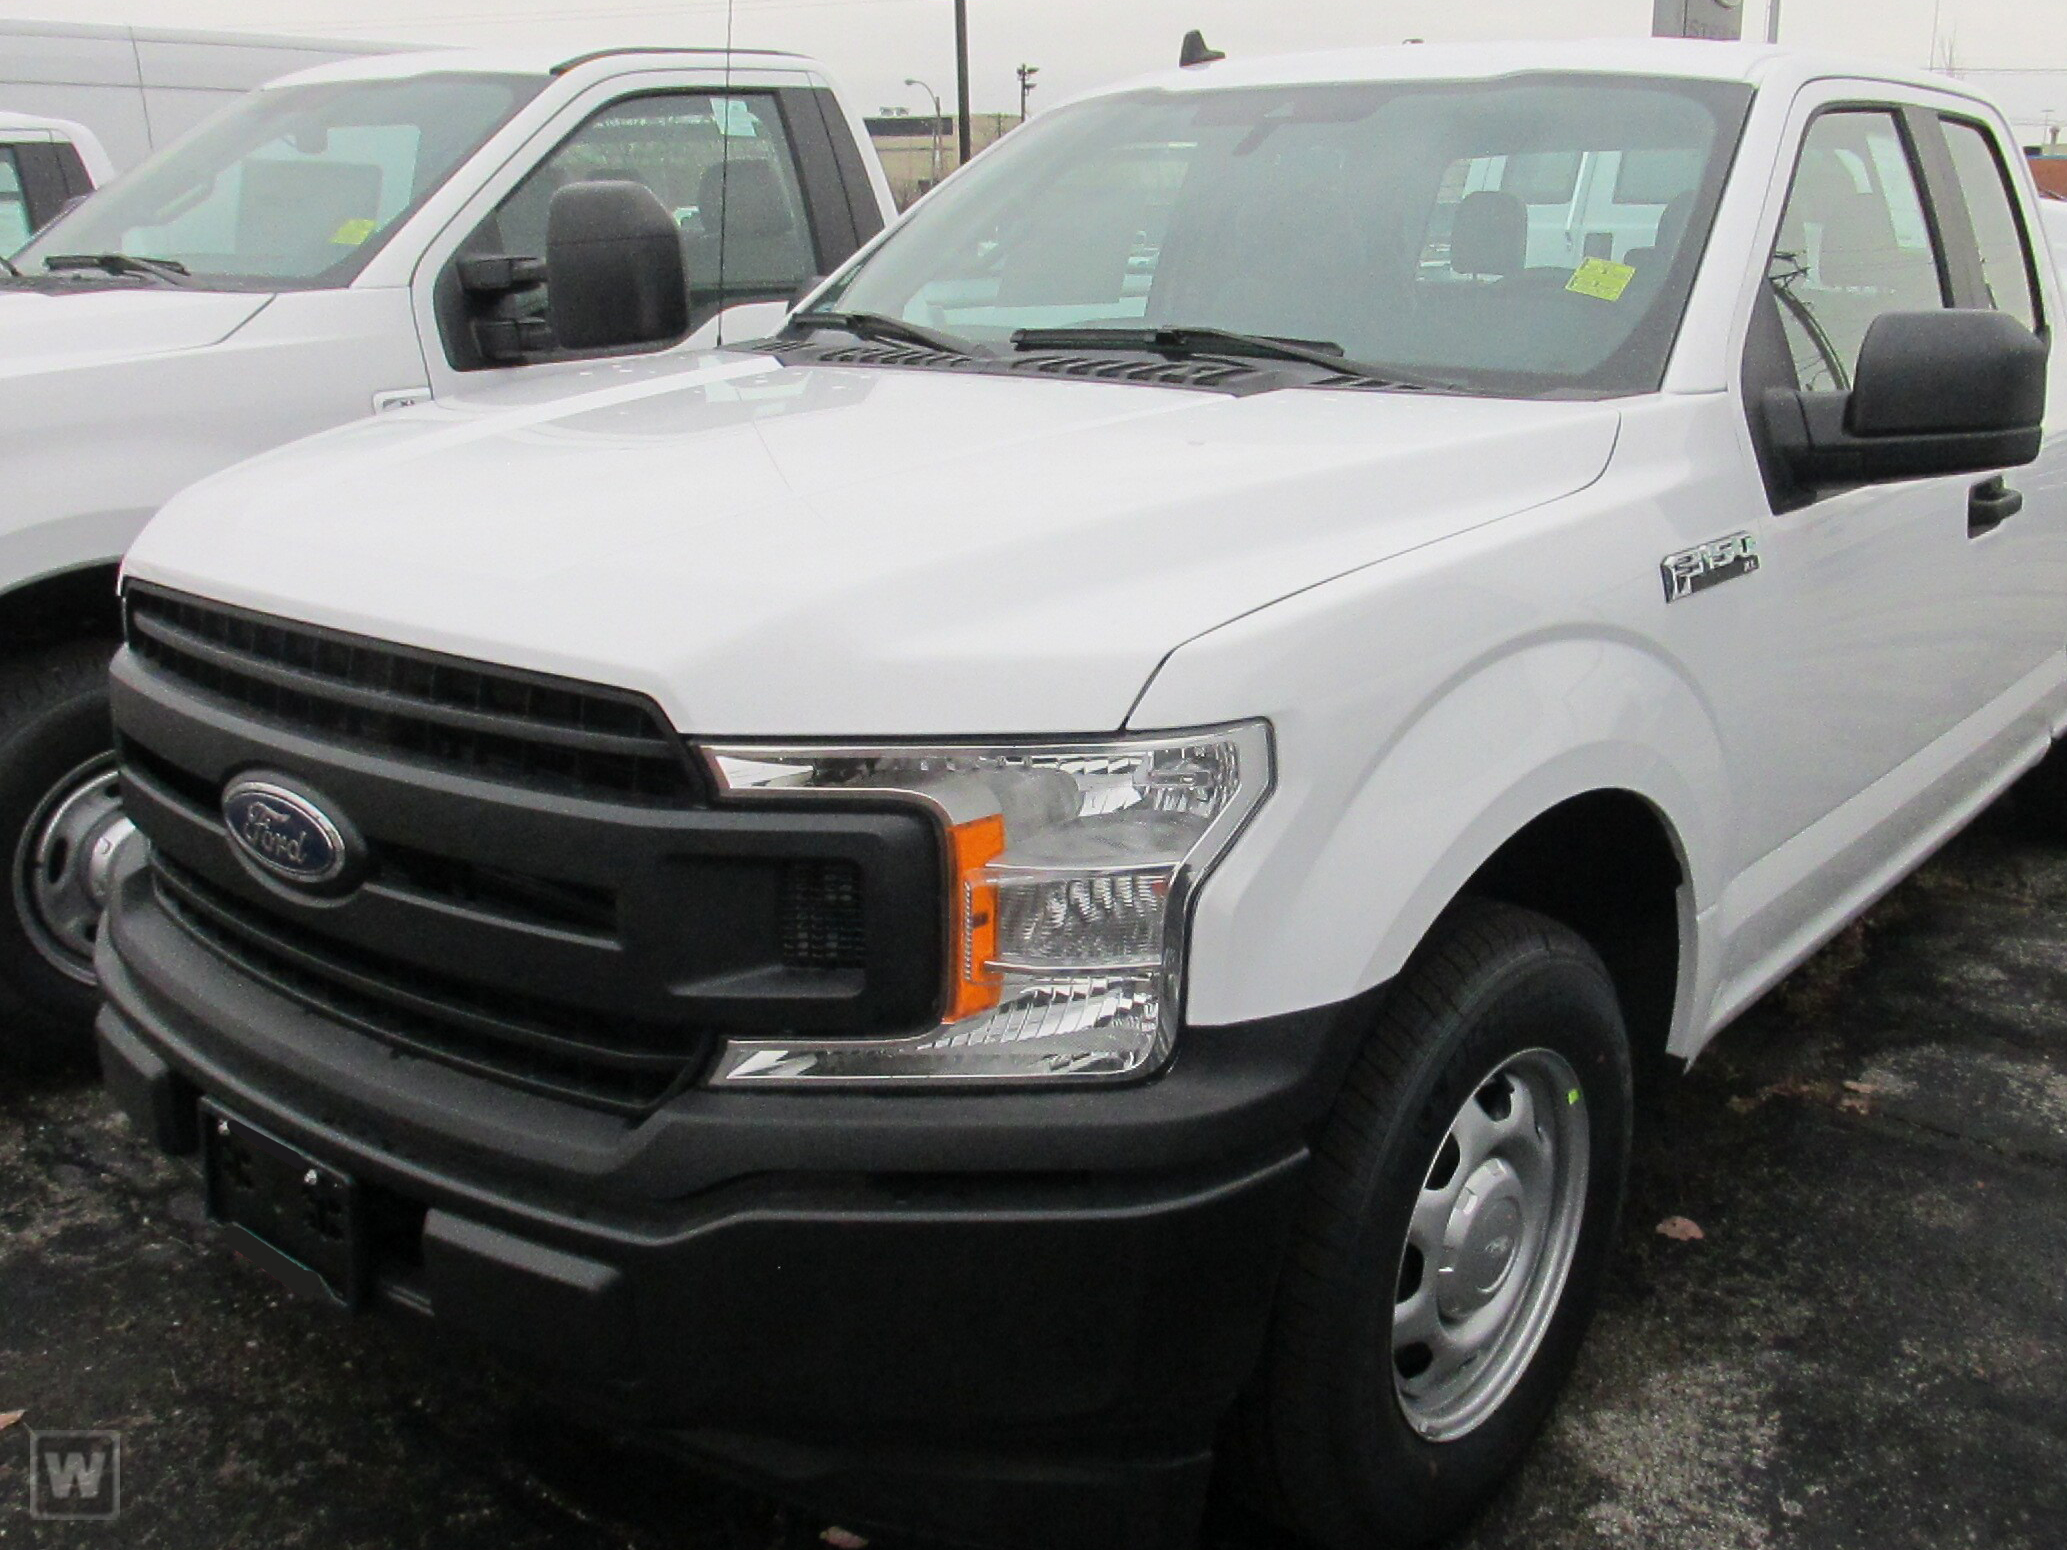 2020 F-150 Super Cab 4x4, Pickup #FT10696 - photo 1